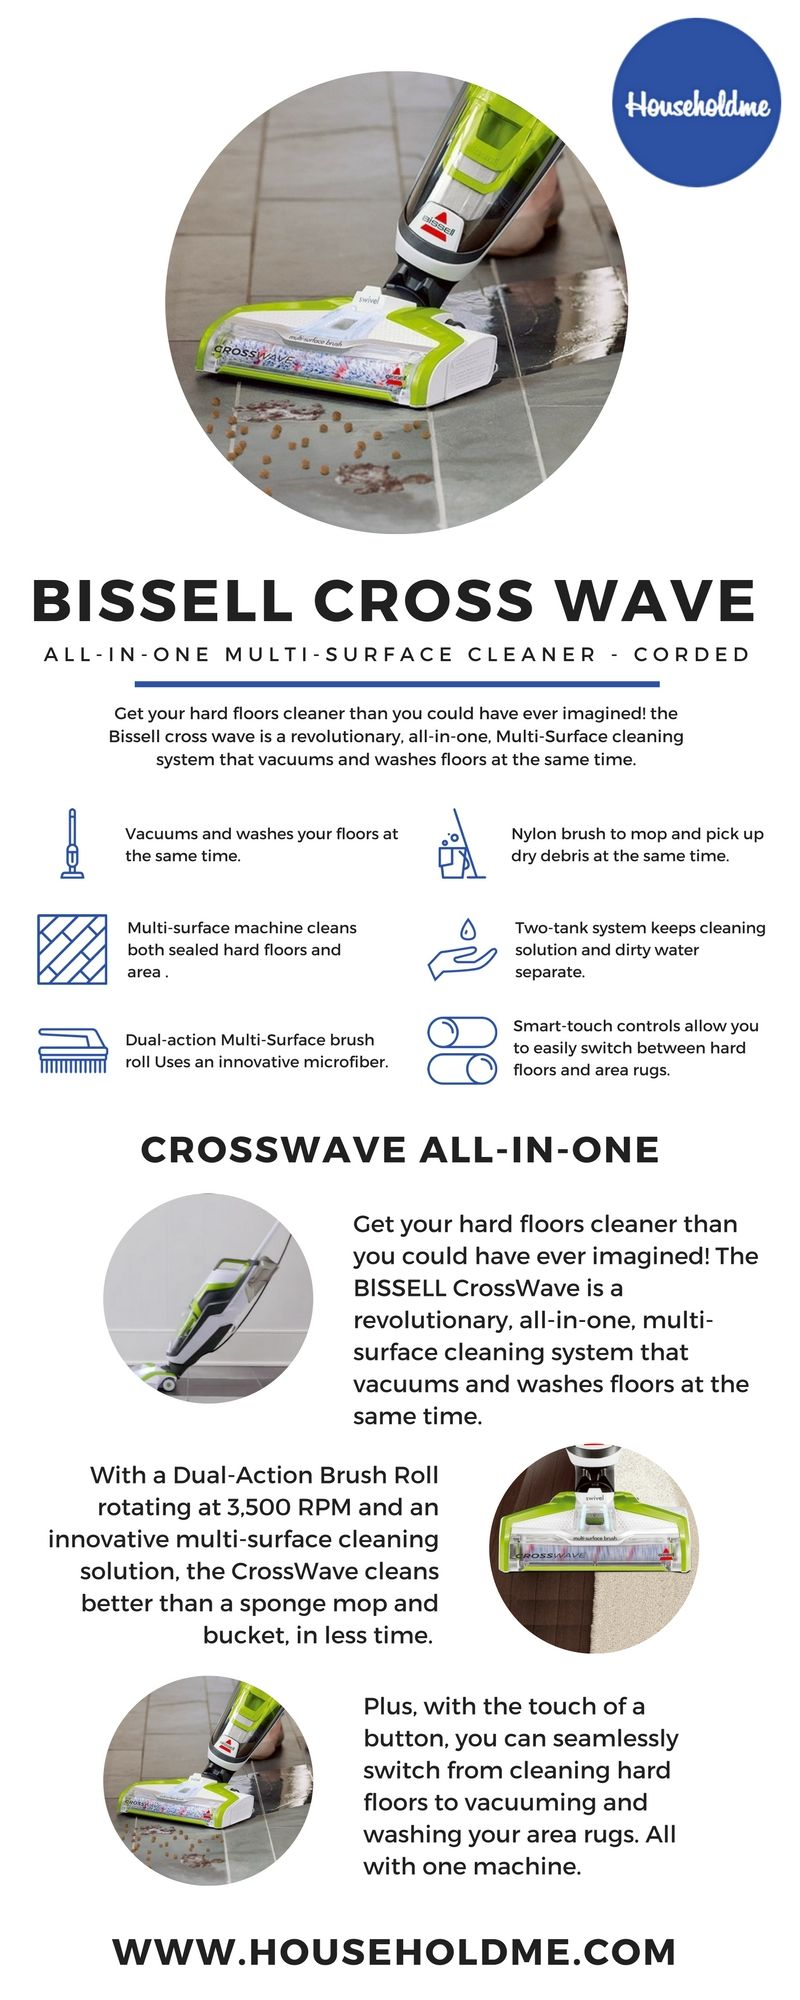 Bissell crosswave floor and carpet cleaner review 1785a model i love the bissell crosswave it cleans my wood and tile floors plus my area dailygadgetfo Image collections